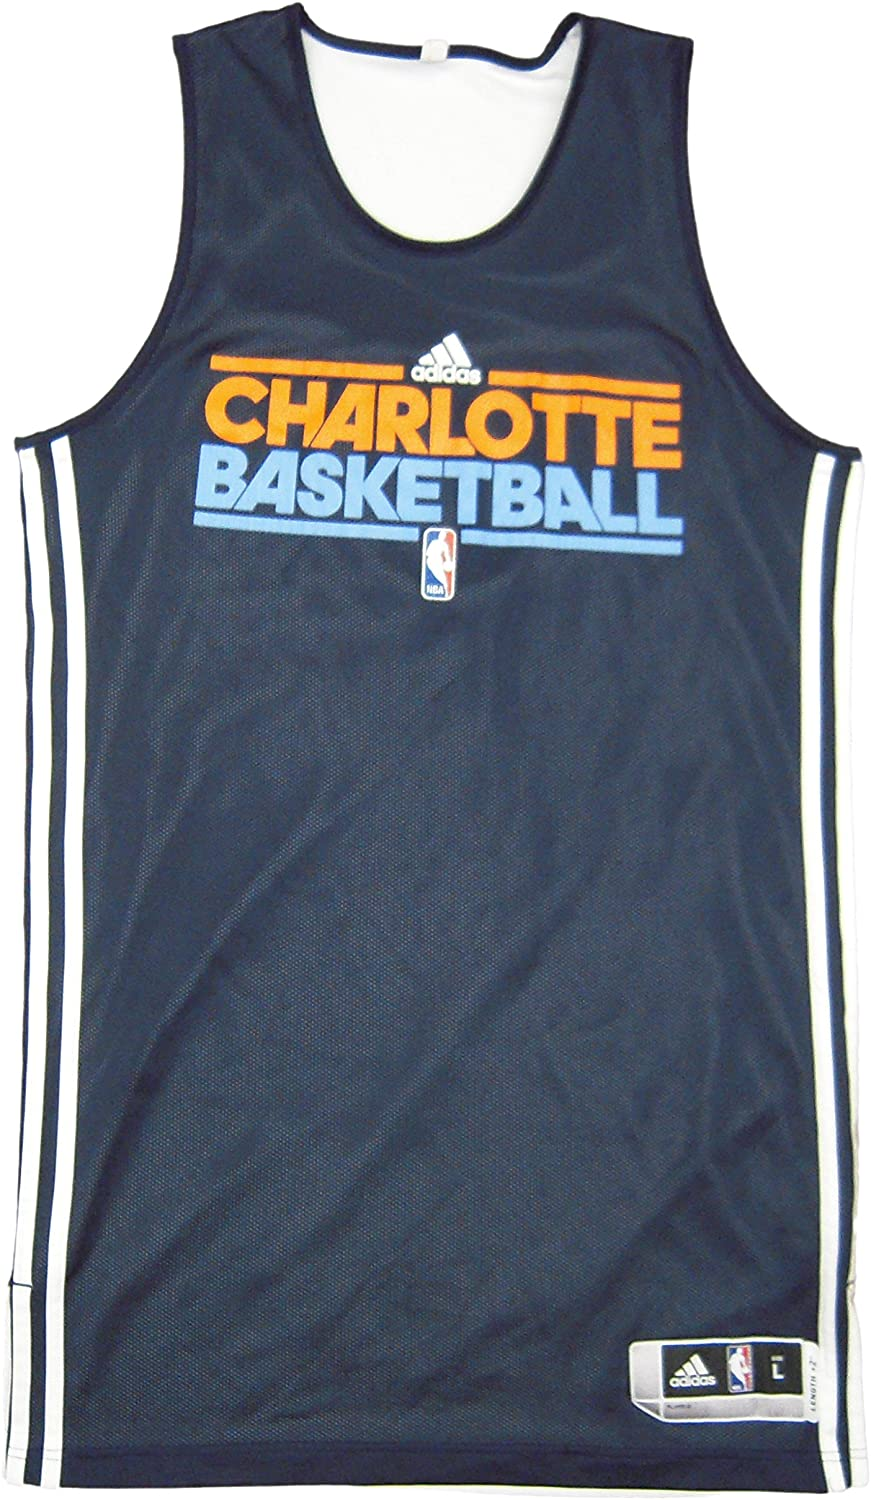 NBA Charlotte Bobcats 2011-12 Team Issued adidas Reversible Practice Jersey - Size XL +2